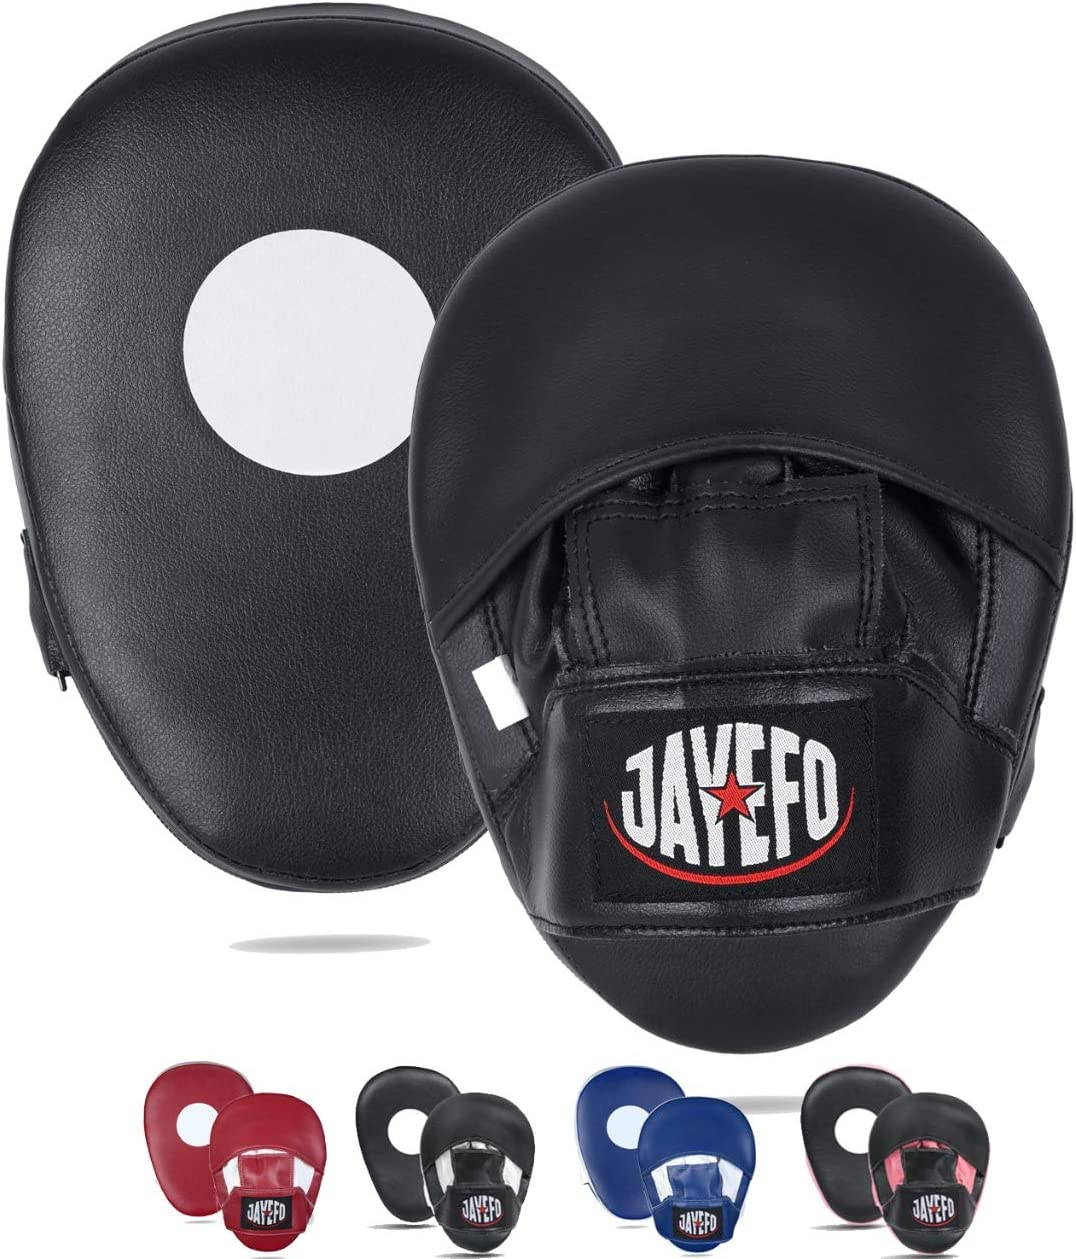 JAYEFO Punching Mitts Focus Target Punch Ranking TOP11 Mi Pads for Sale special price